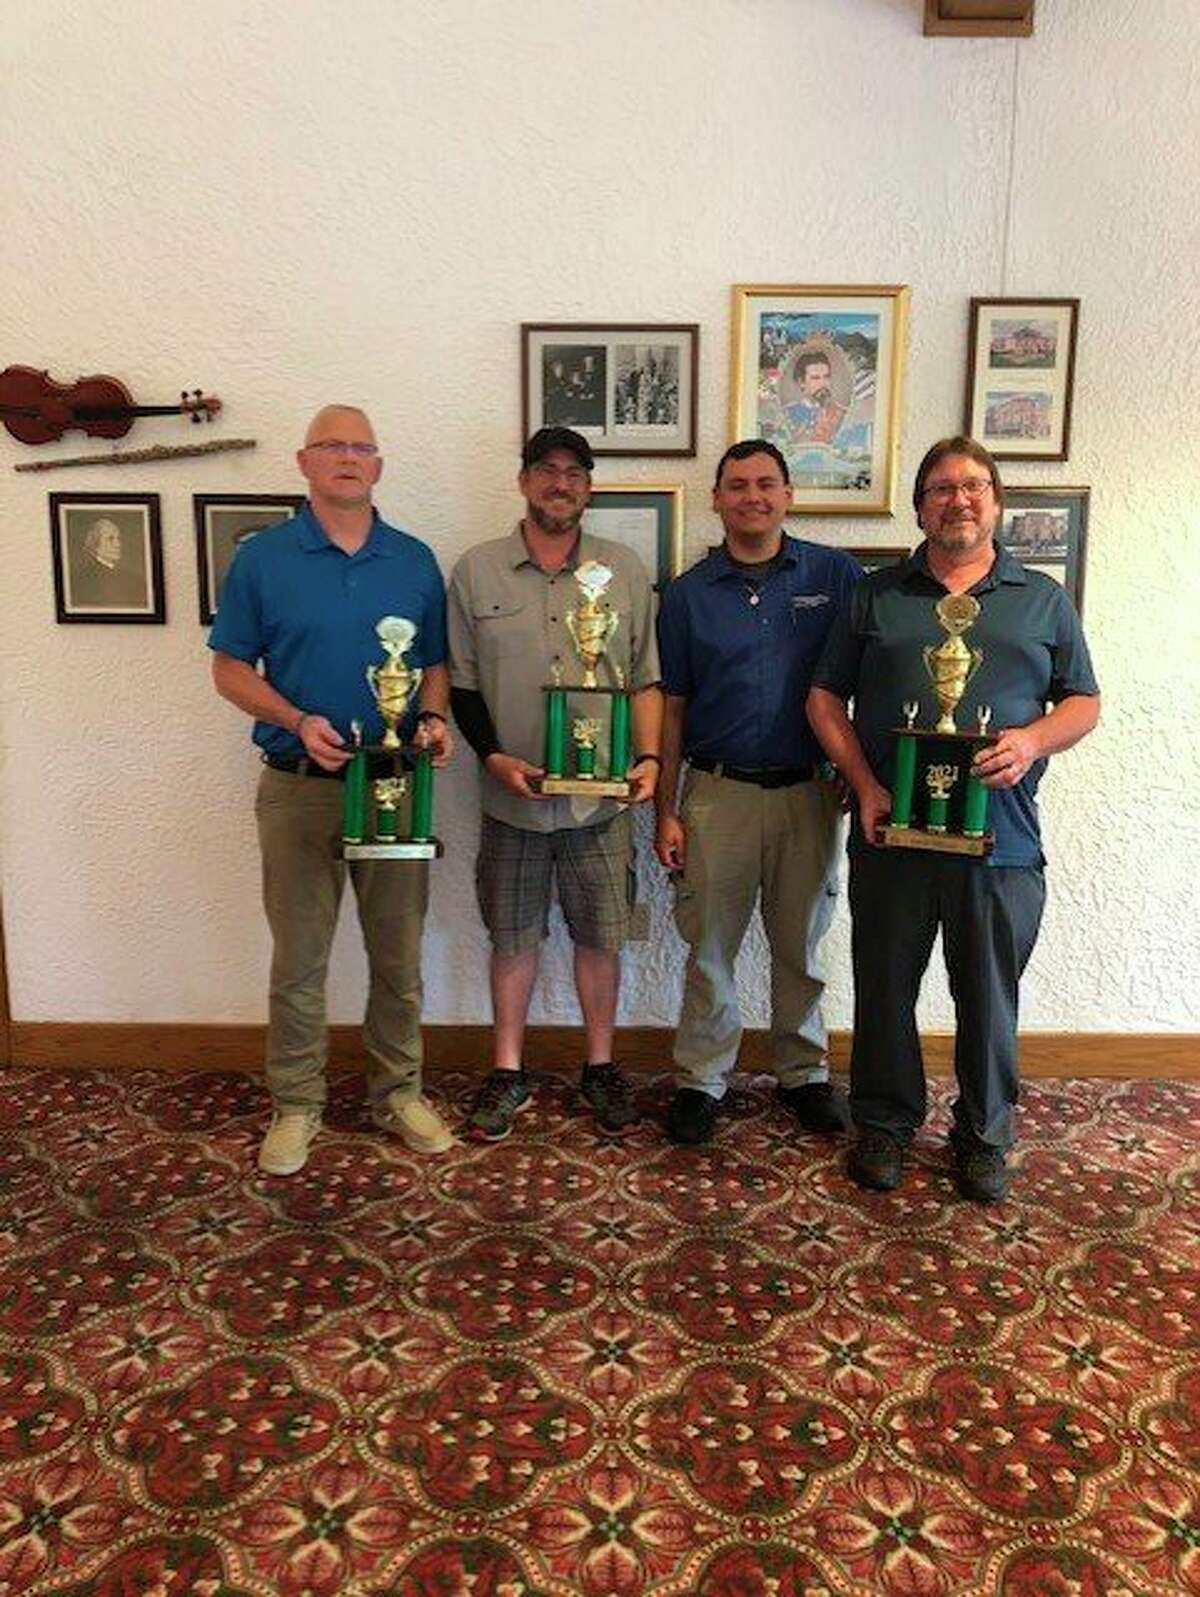 Douglas Ross, Timm Forth, and Wayne Kinney hold the trophies they received from placing in this year's Michigan Small Bus Roadeo in Frankenmuth. In the individual competition, Kinney finished fourth, Forth finished fifth, and Ross finished sixth. (Thumb Area Transit/Courtesy Photo)